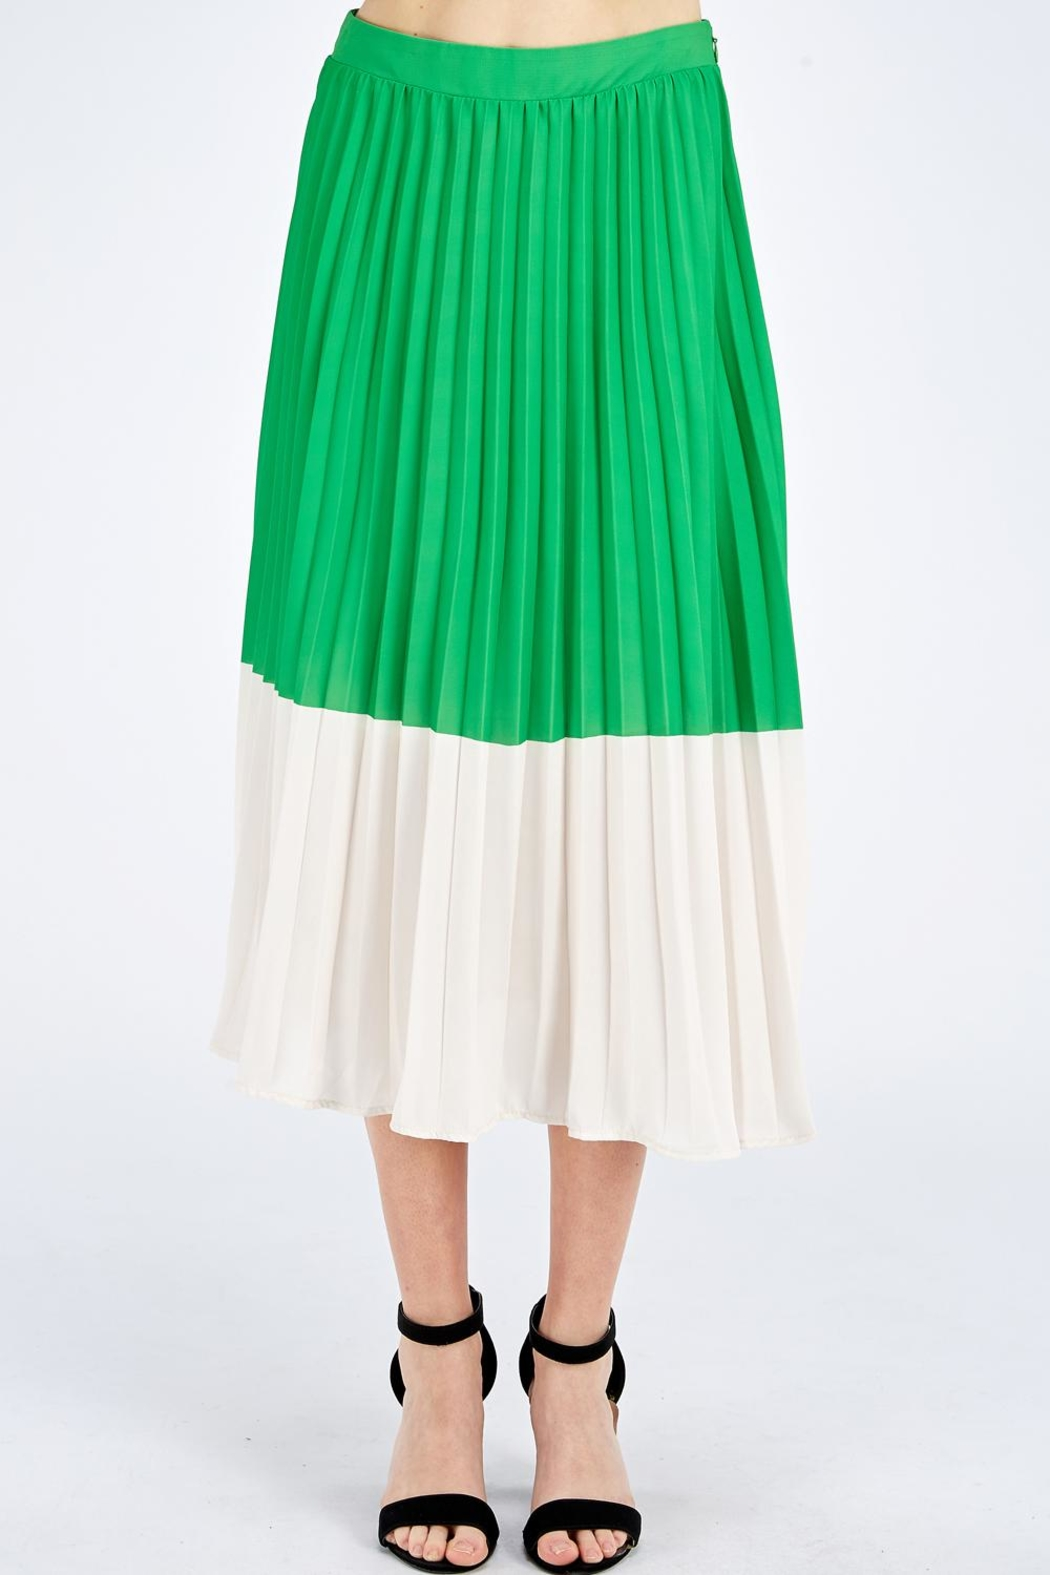 Jealous Tomato Green Pleated Skirt - Main Image